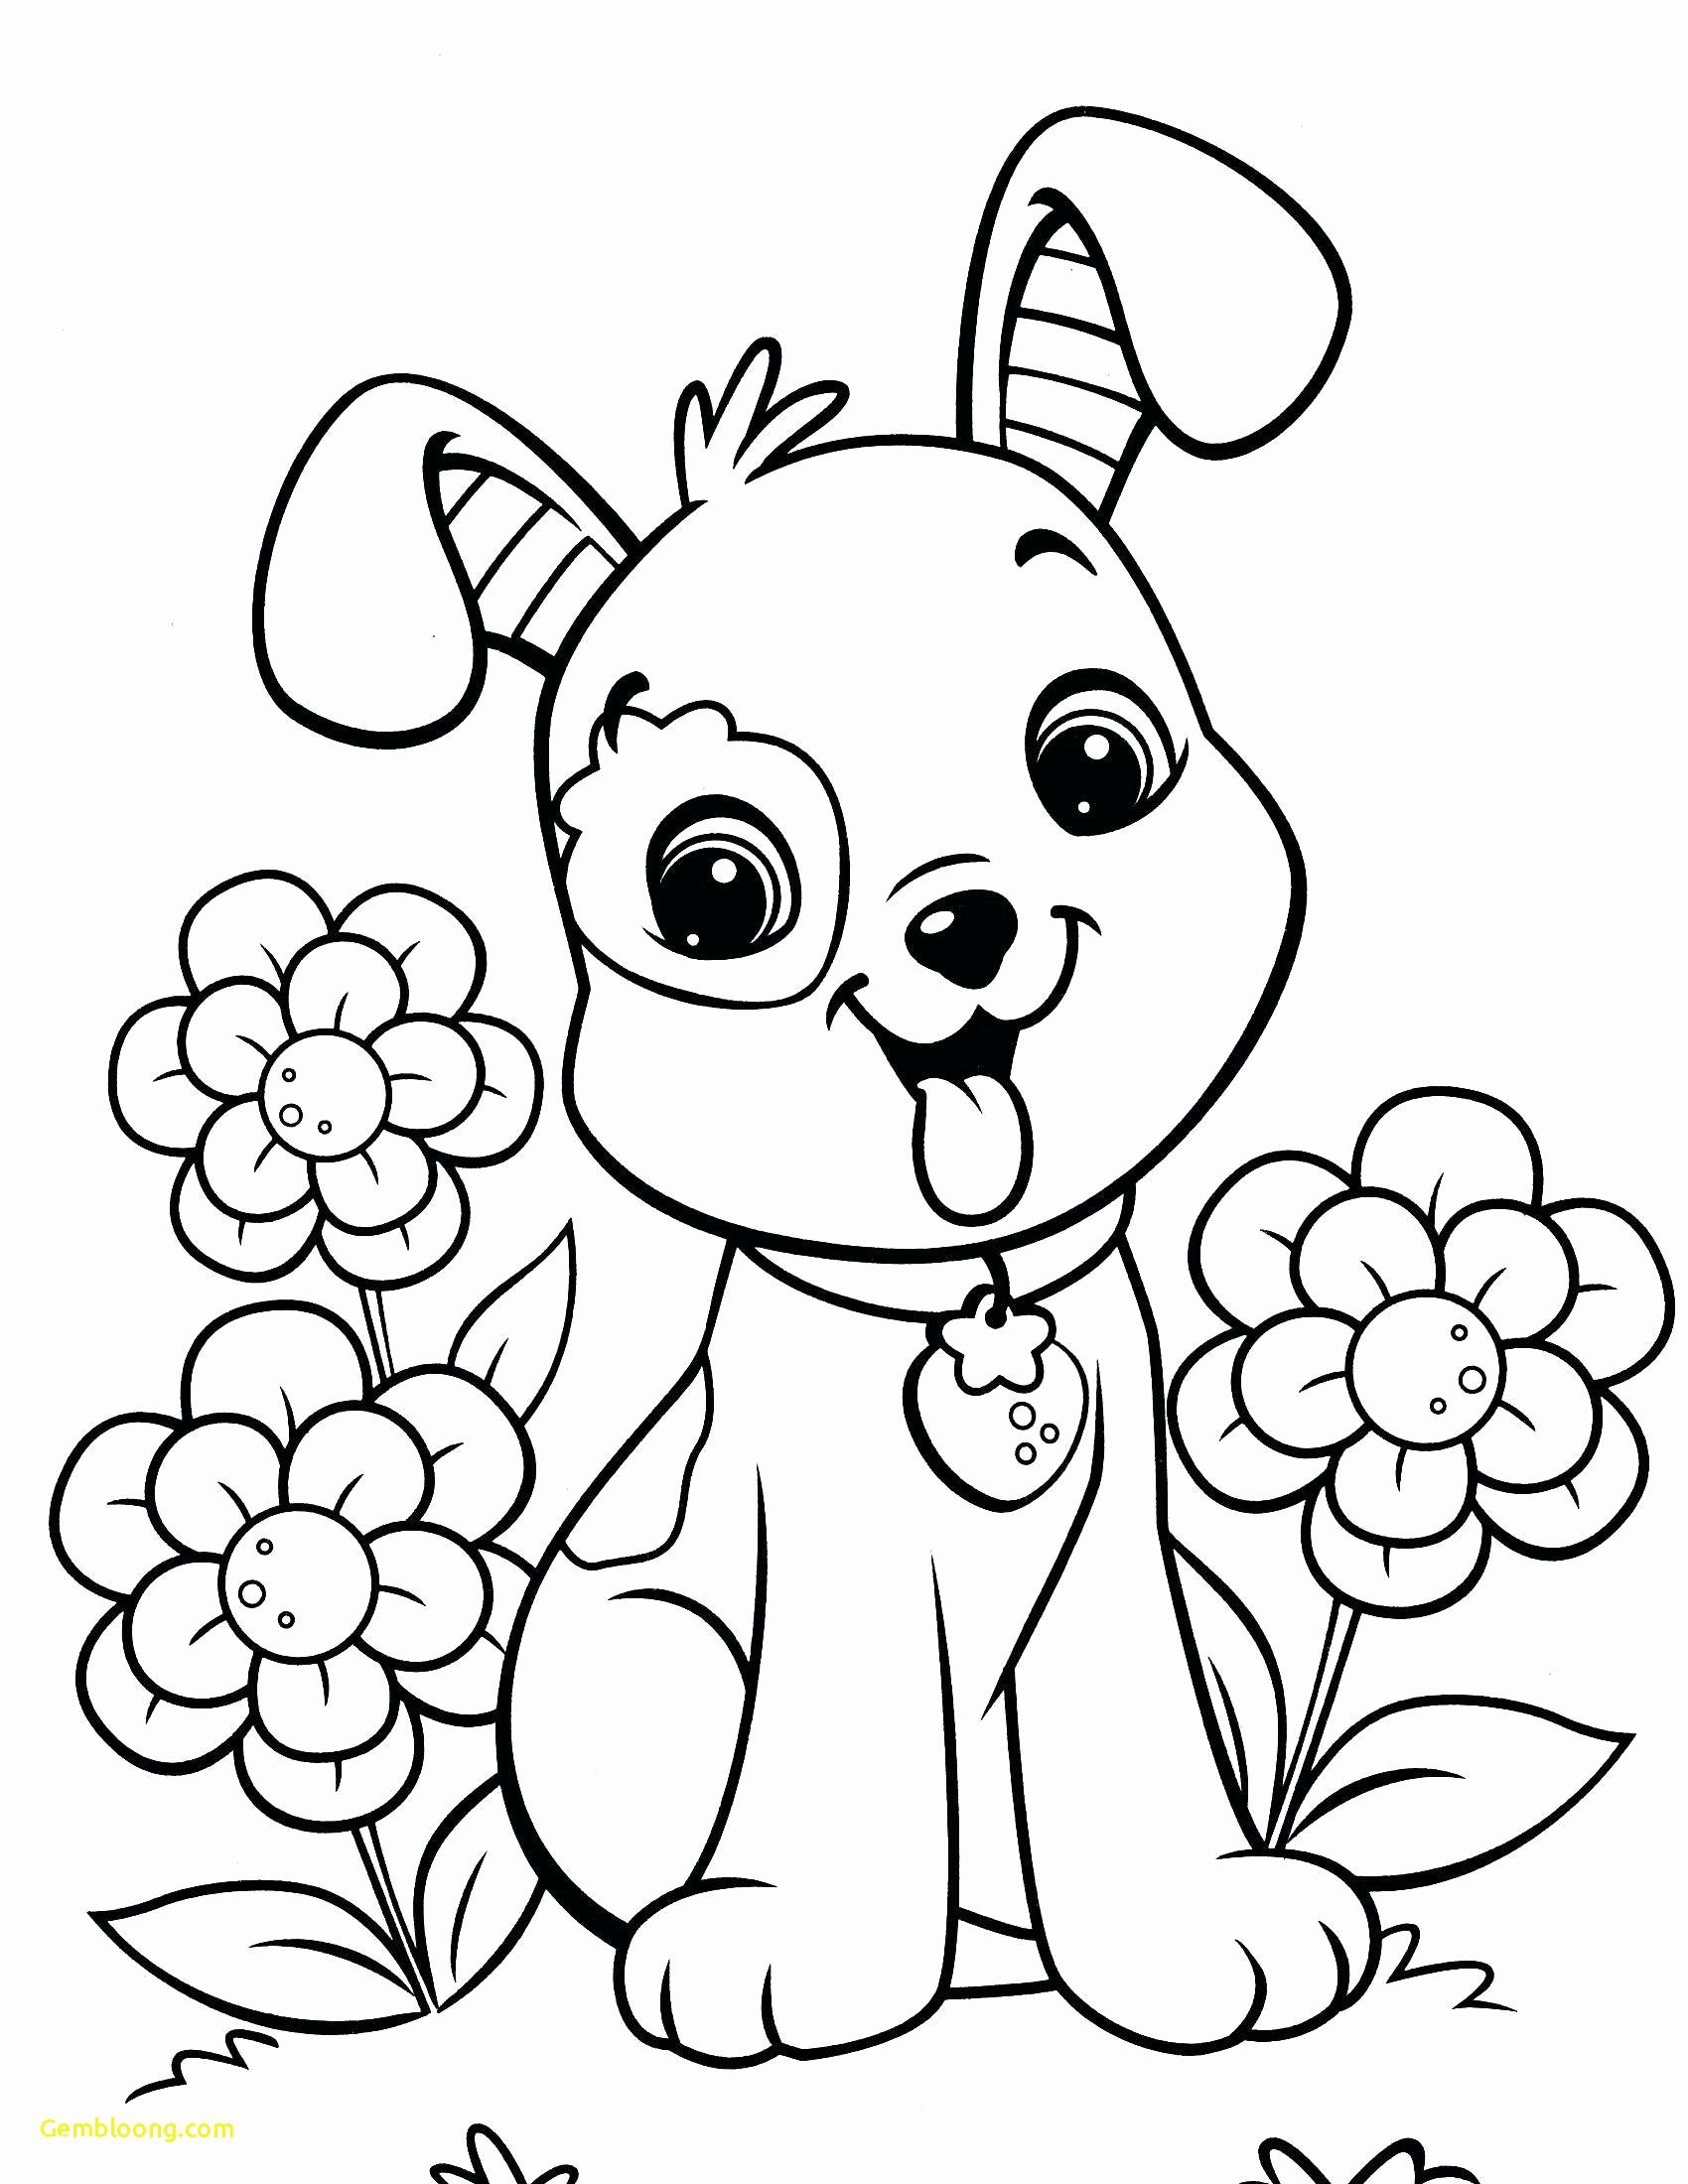 Free Printable Colouring Worksheets for Preschoolers Fresh Childrens Printable Colouring Pages Inspirational Coloring